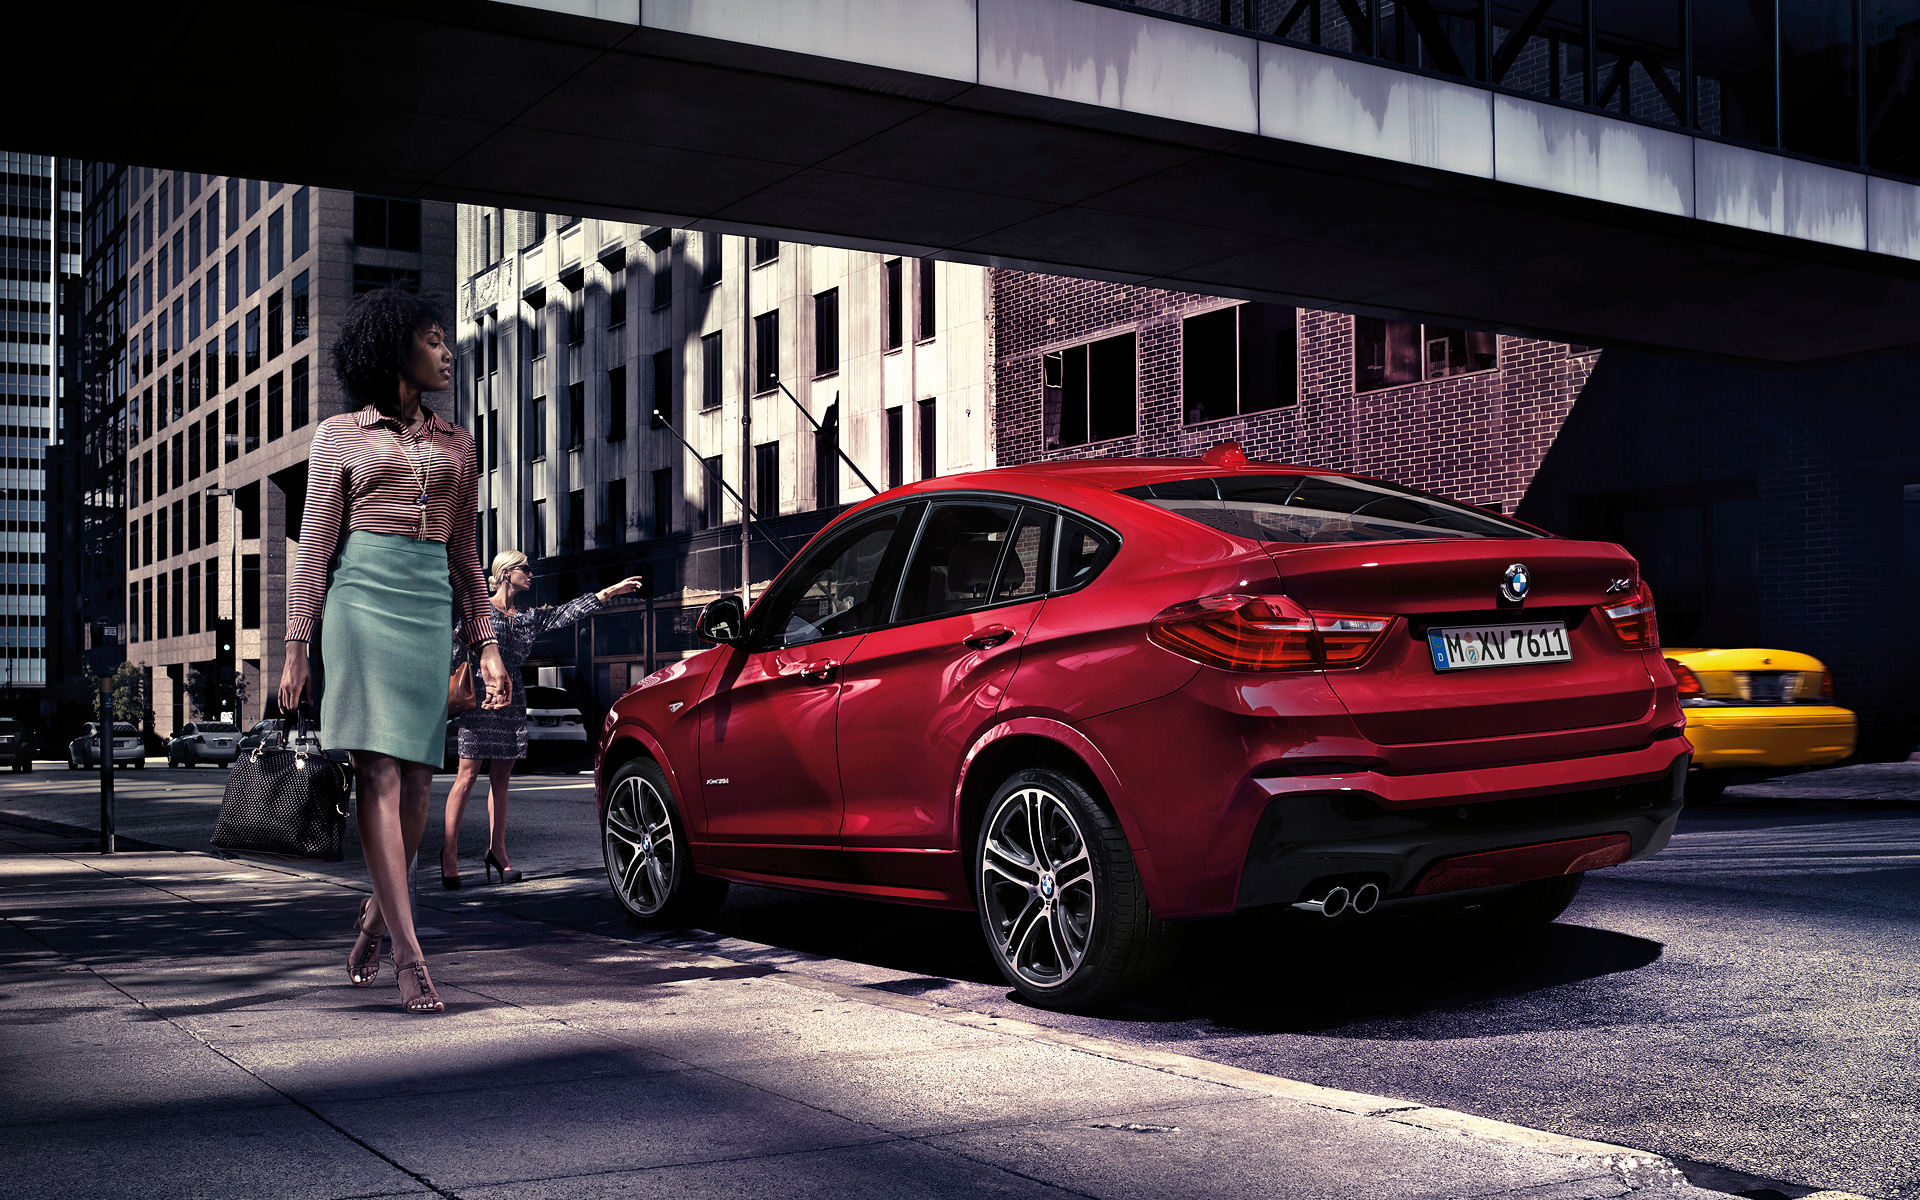 1920x1200 - BMW X4 Wallpapers 32